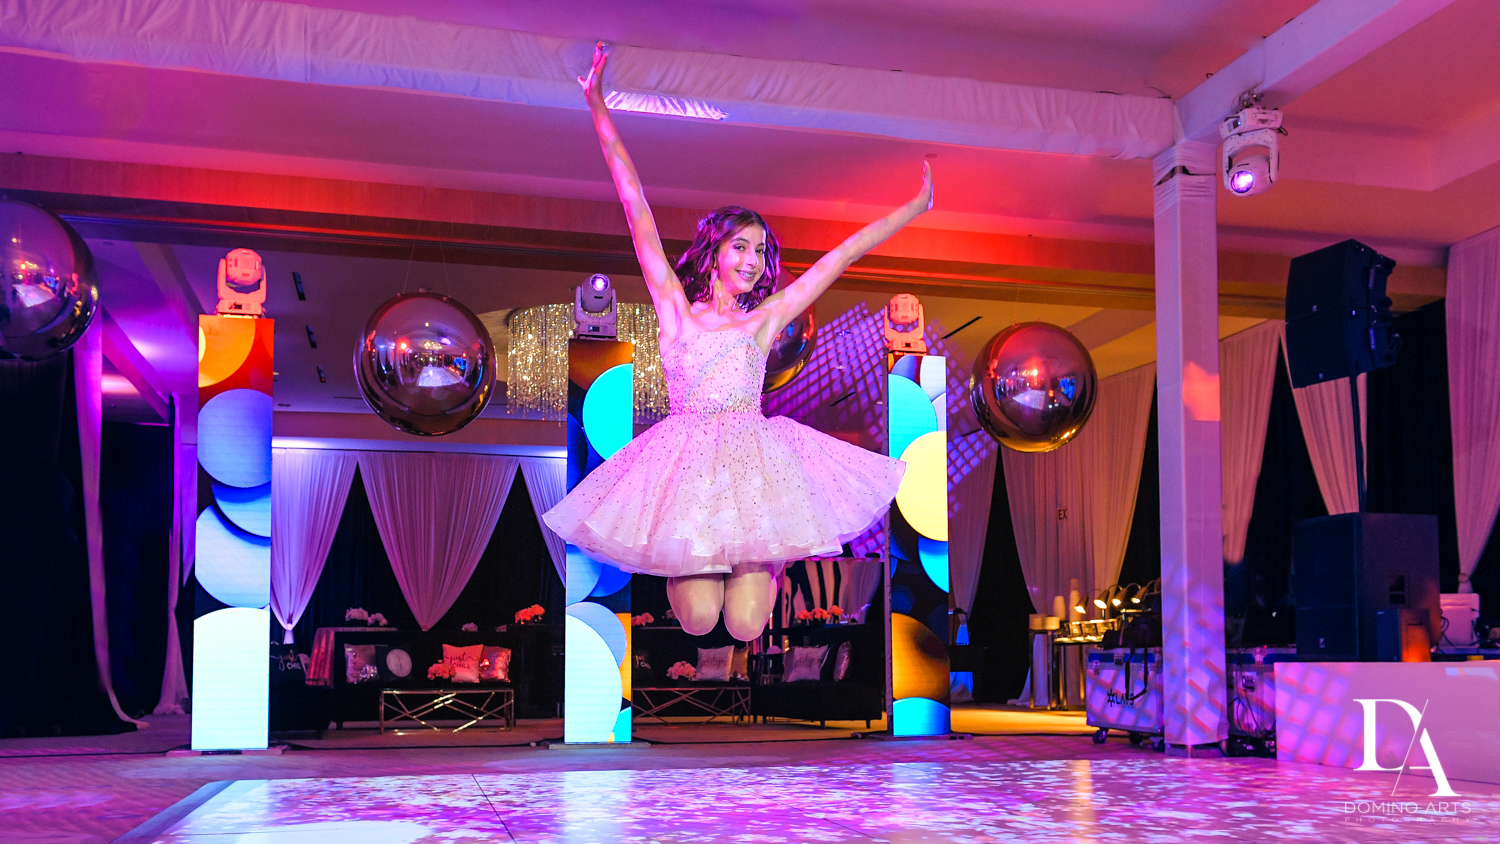 jumping photo at Masquerade Ball Bat Mitzvah at Ritz Carlton Fort Lauderdale by Domino Arts Photography